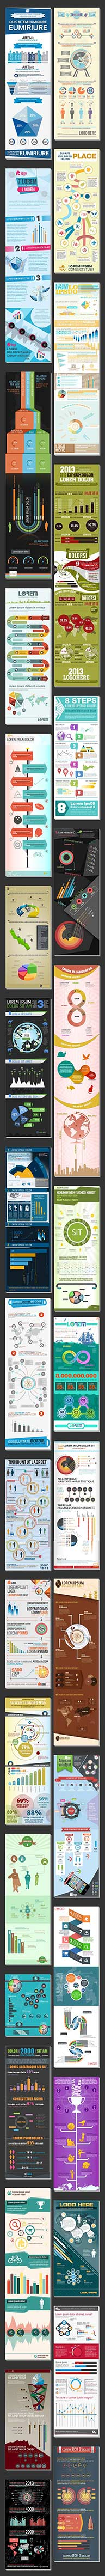 The Infographic Super Bundle: 105 Awesome RF Templates for Just $27